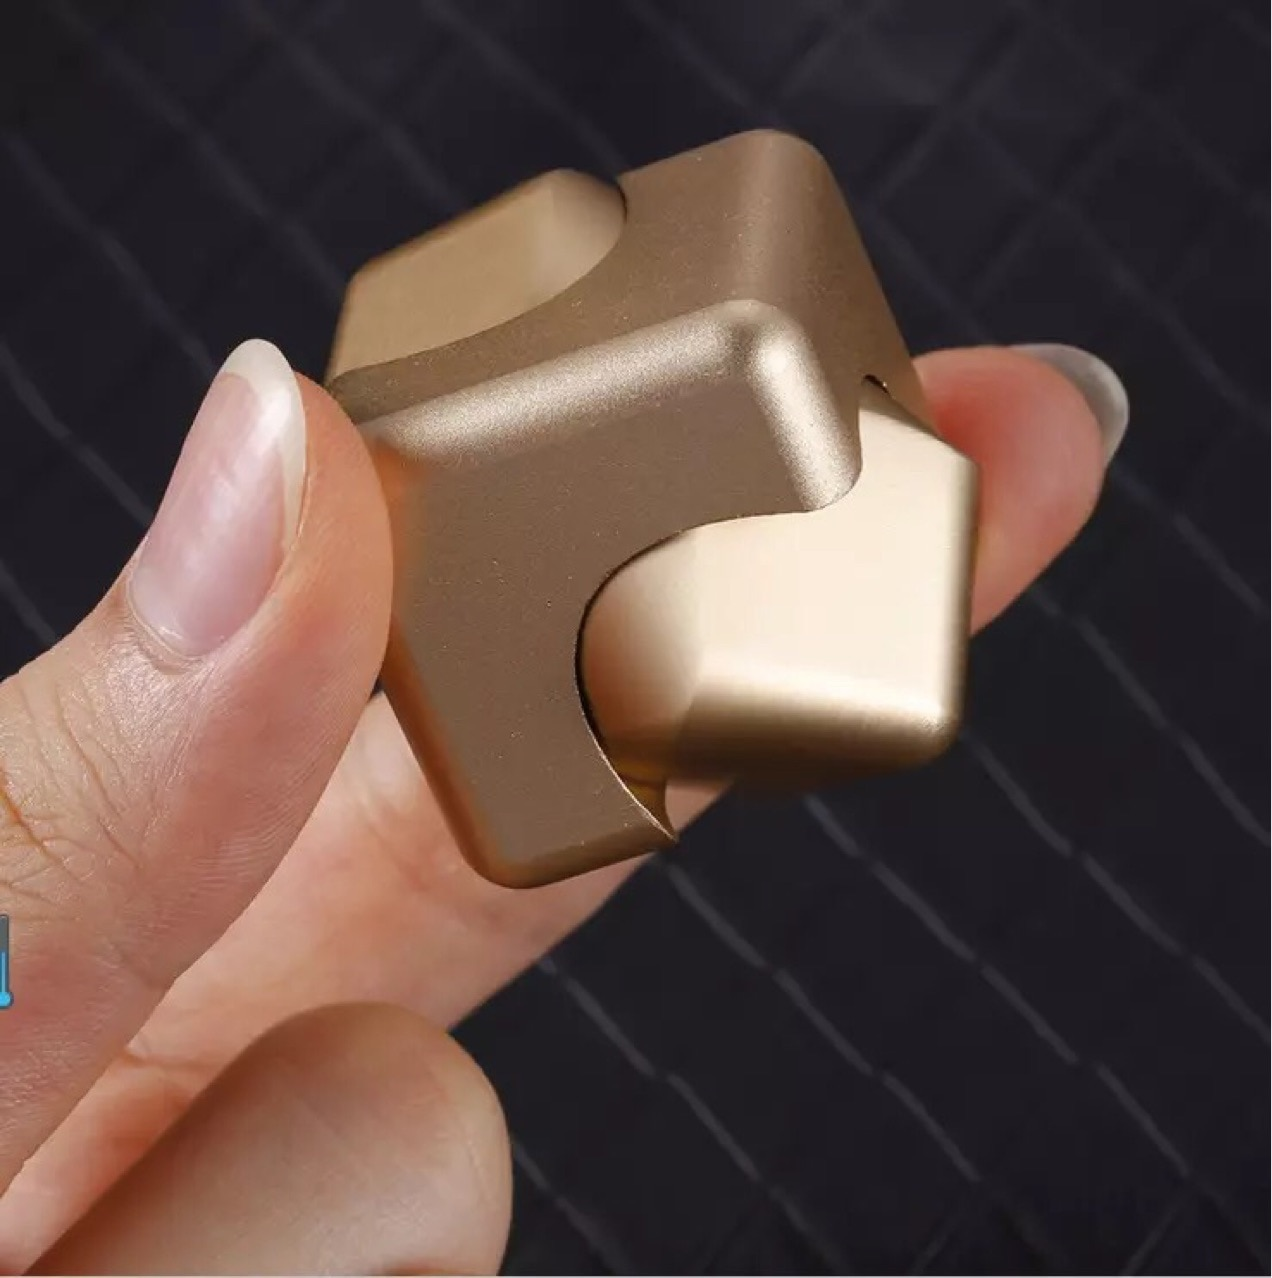 DPG-3 New Pressure - Reducing Finger Gyro Cool Rreative Gifts Novel Toys Metal Color Fun leisure Relieves Stress enlarge